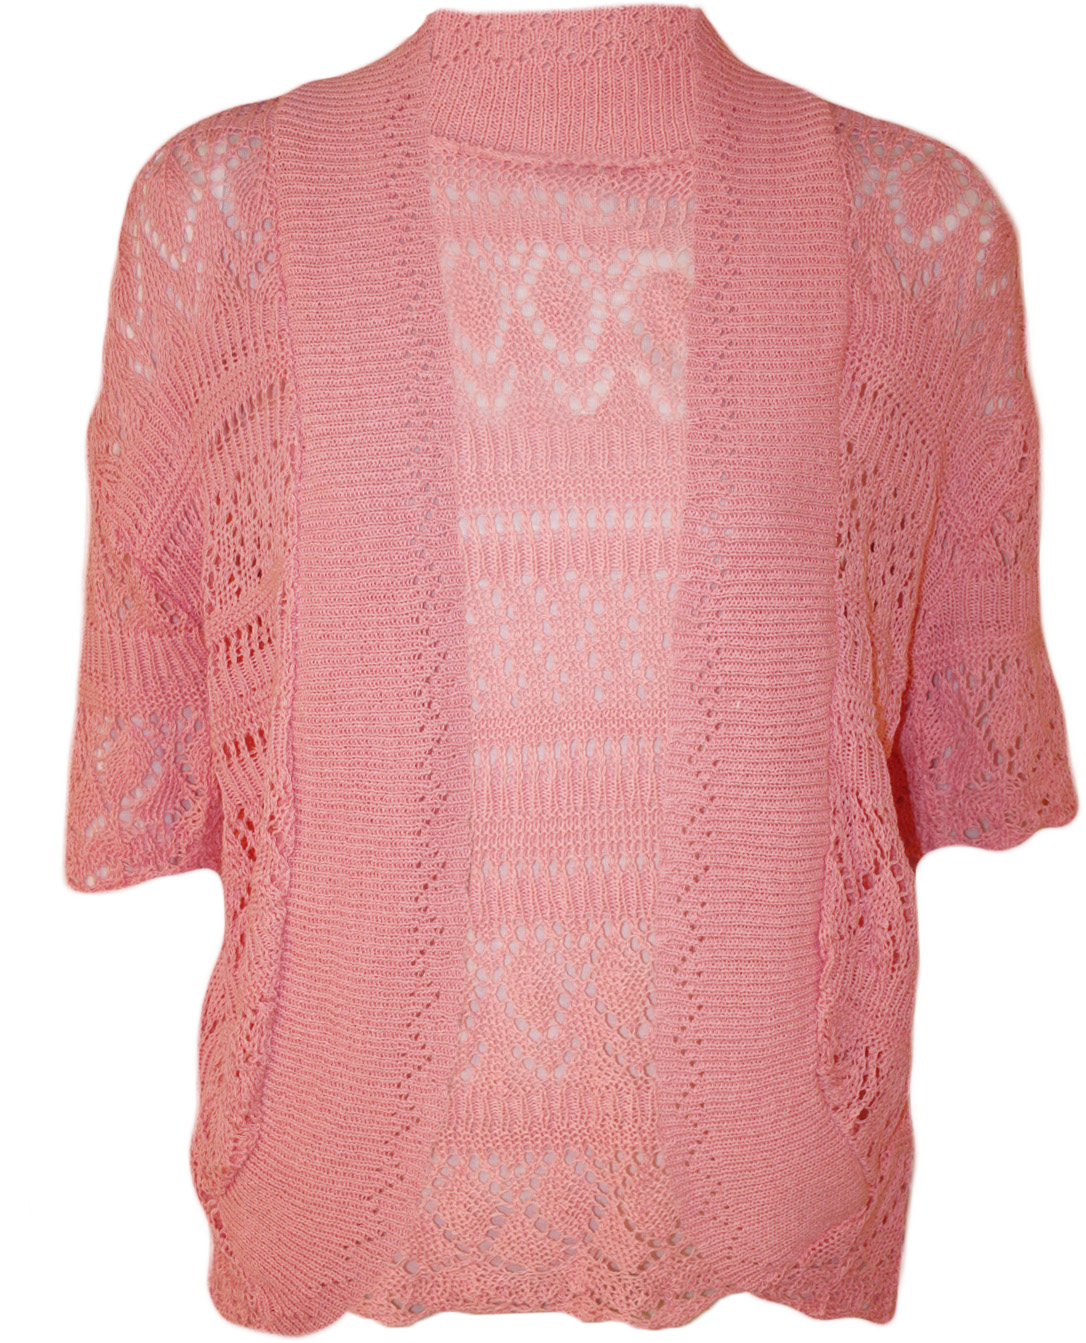 New Womens Plus Size Crochet Knitted Short Sleeve Ladies Open Cardigan Top 16...